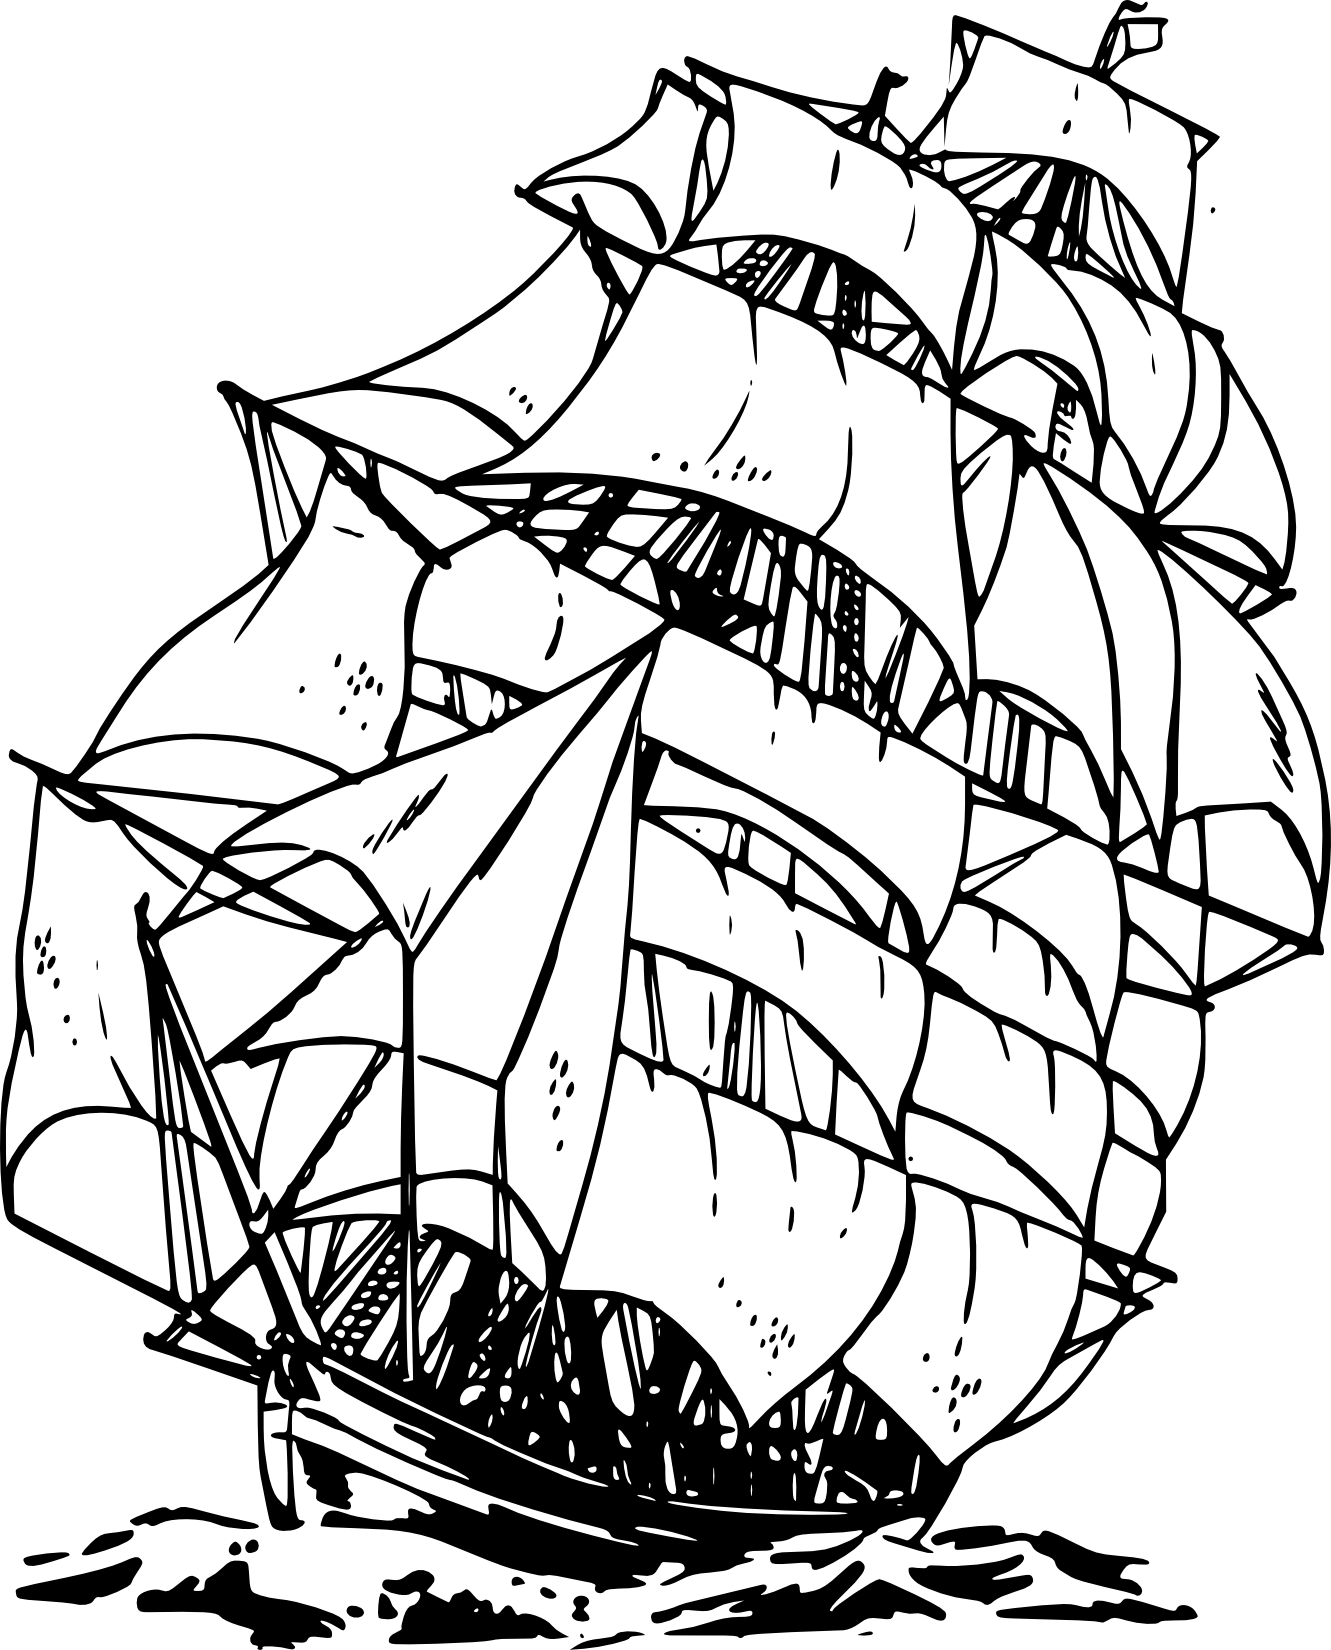 clipart black and white download Pirate Ship Clipart Black And White Clipart Panda Free Clipart